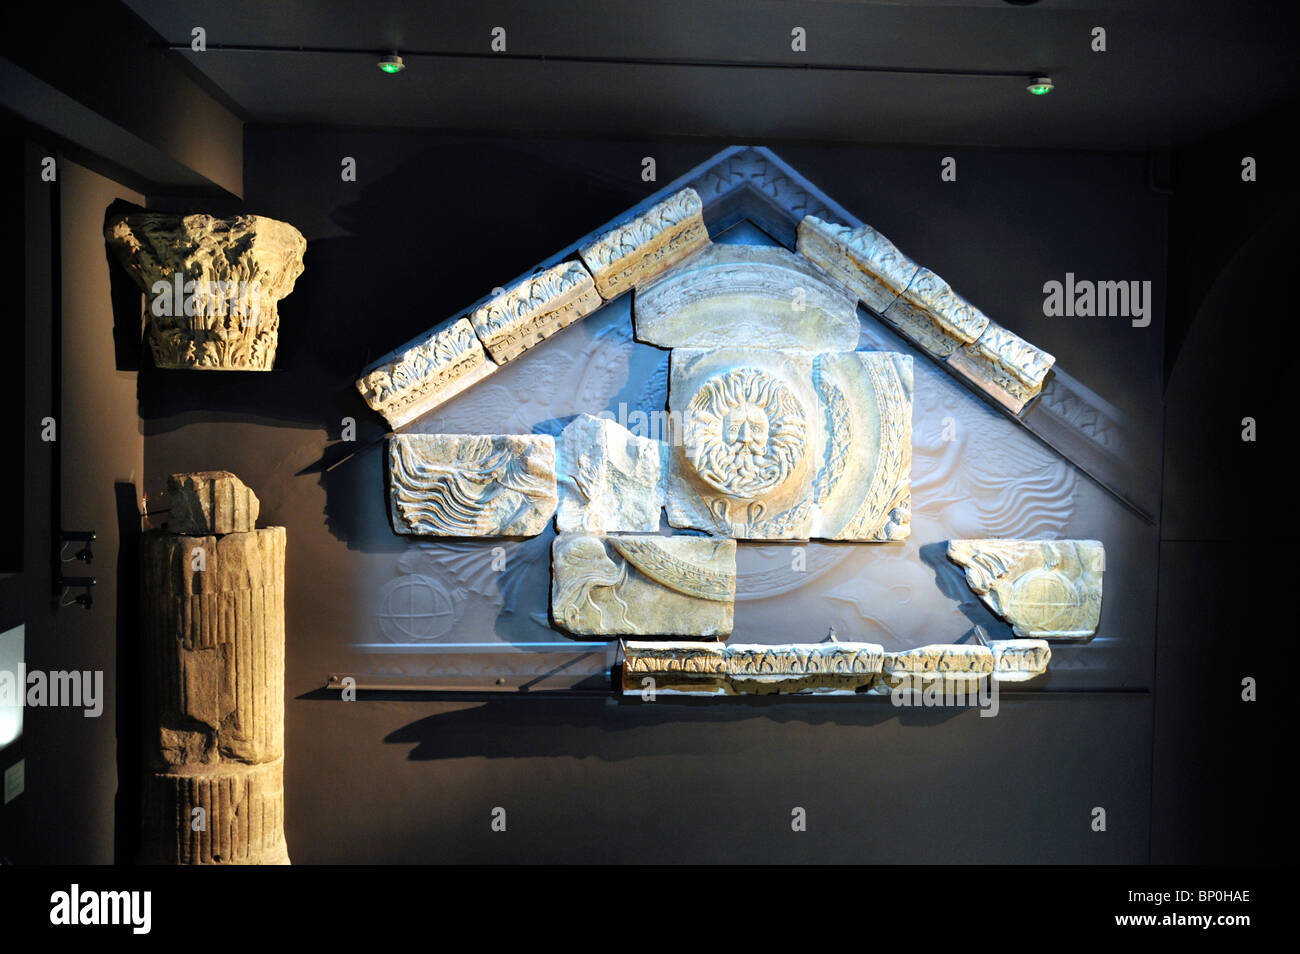 Display of Temple Pediment, Roman Temple of Sulis Minerva, Roman Baths, Bath, England - Stock Image